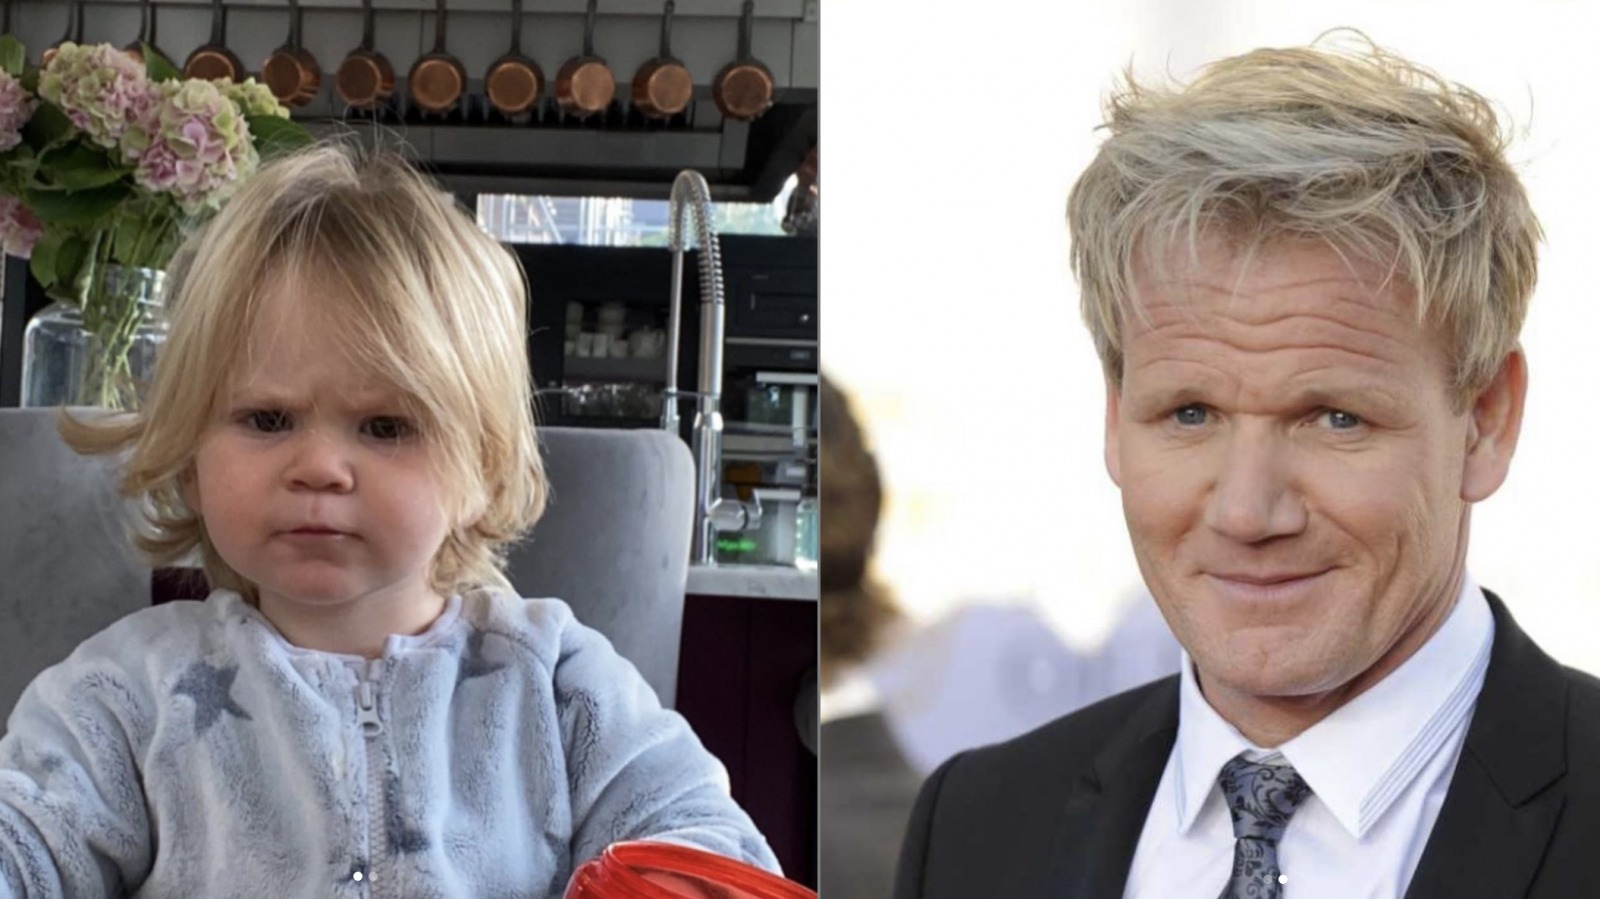 Gordon Ramsay's Instagram of his son has people talking thumbnail